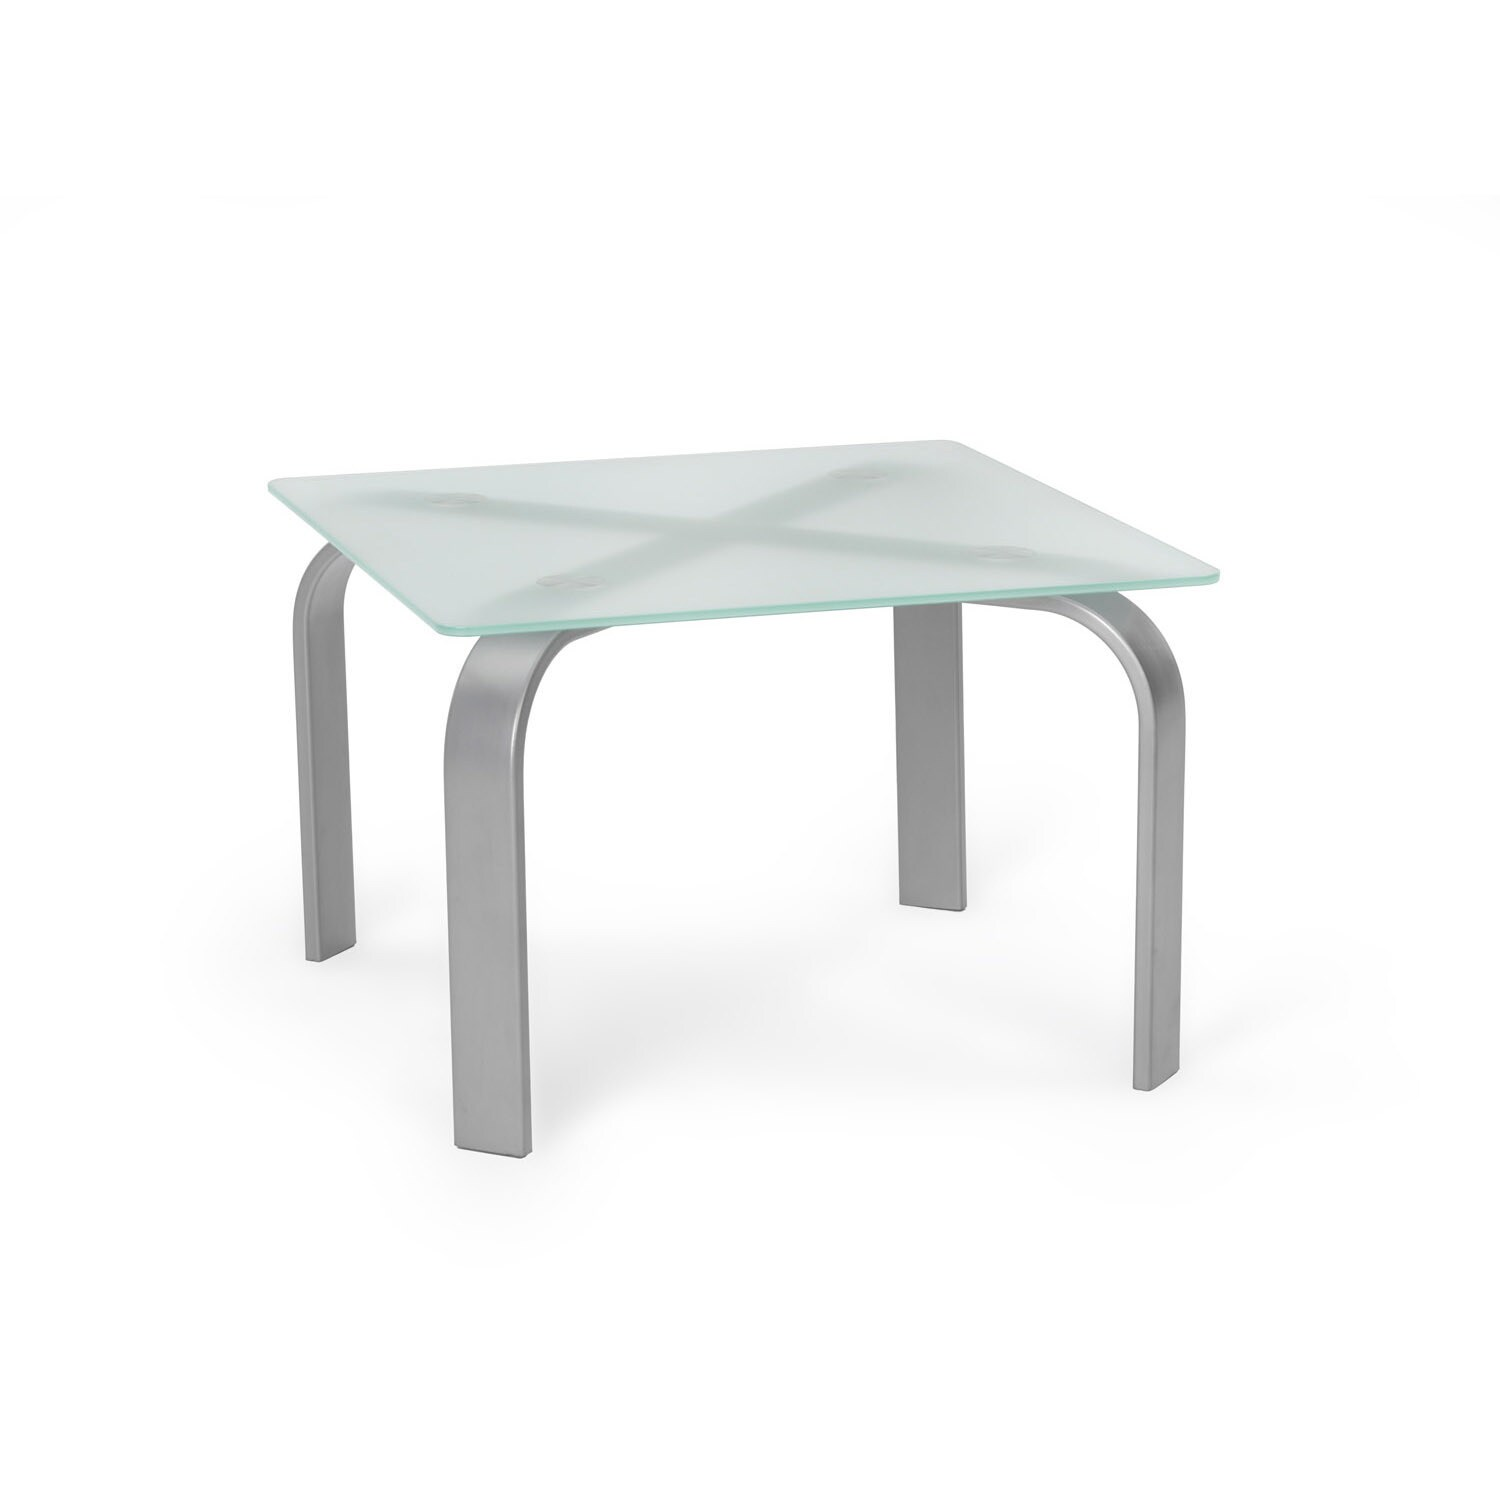 office reception symphony square end table with tempered frosted urban designs glass details about rugs gas pipe floor flange leather sofa genuine modern furniture houston tall